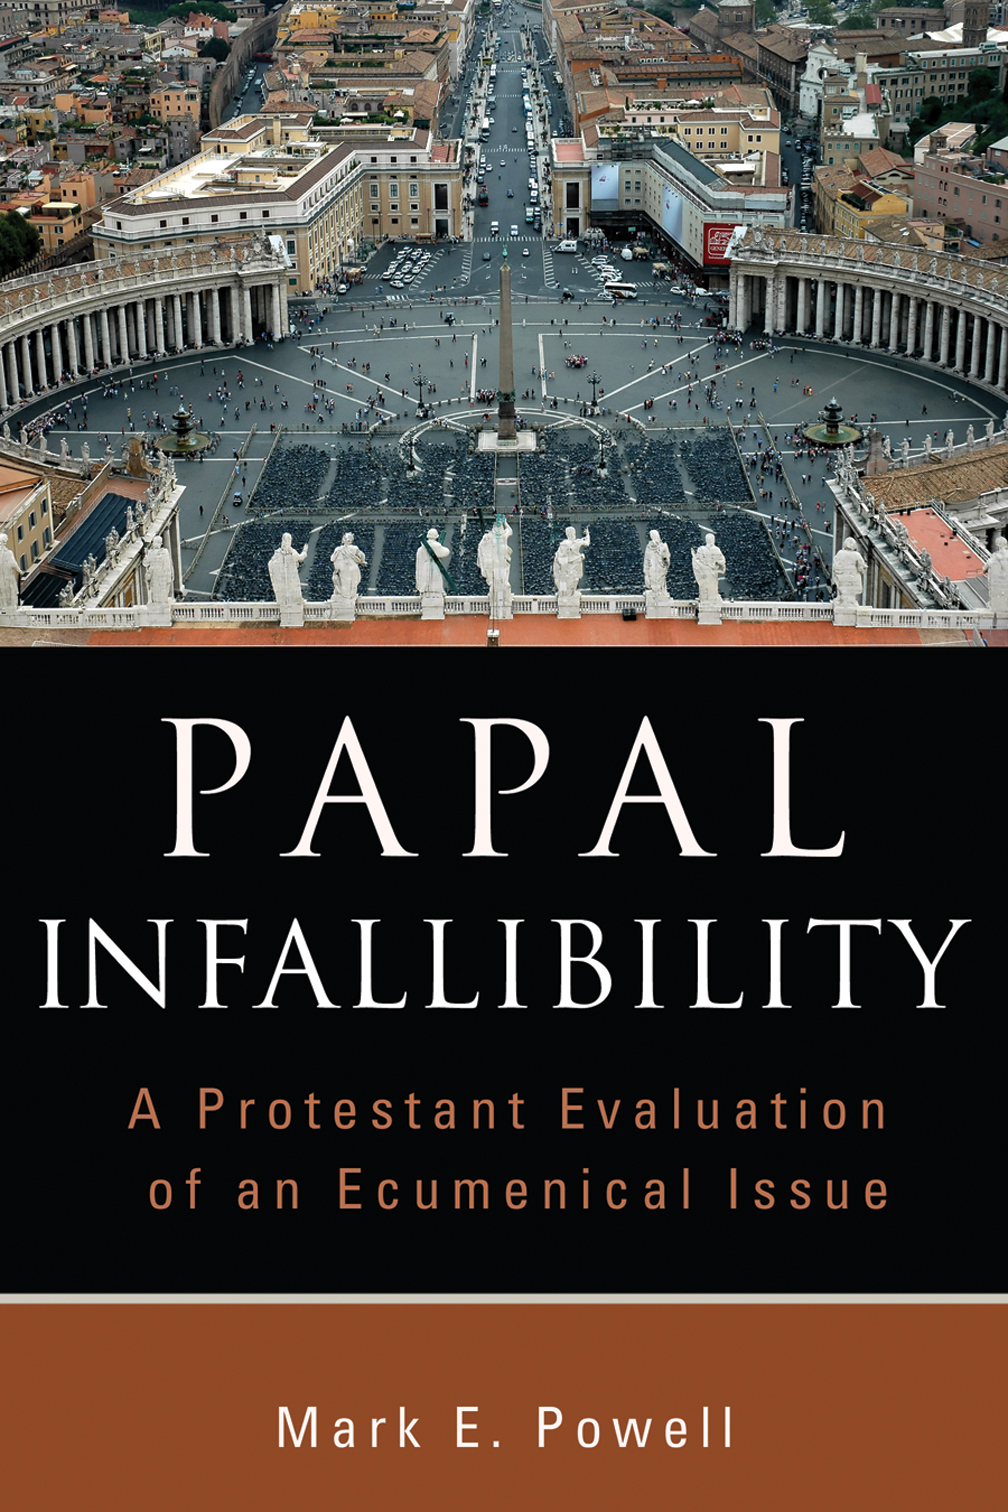 papal infallibility essays Pope john paul ii specifically clarified that the reservation of ordination to males is infallible under the infallibility of the ordinary and universal magisterium of the church, without issuing a corresponding extraordinary papal definition.